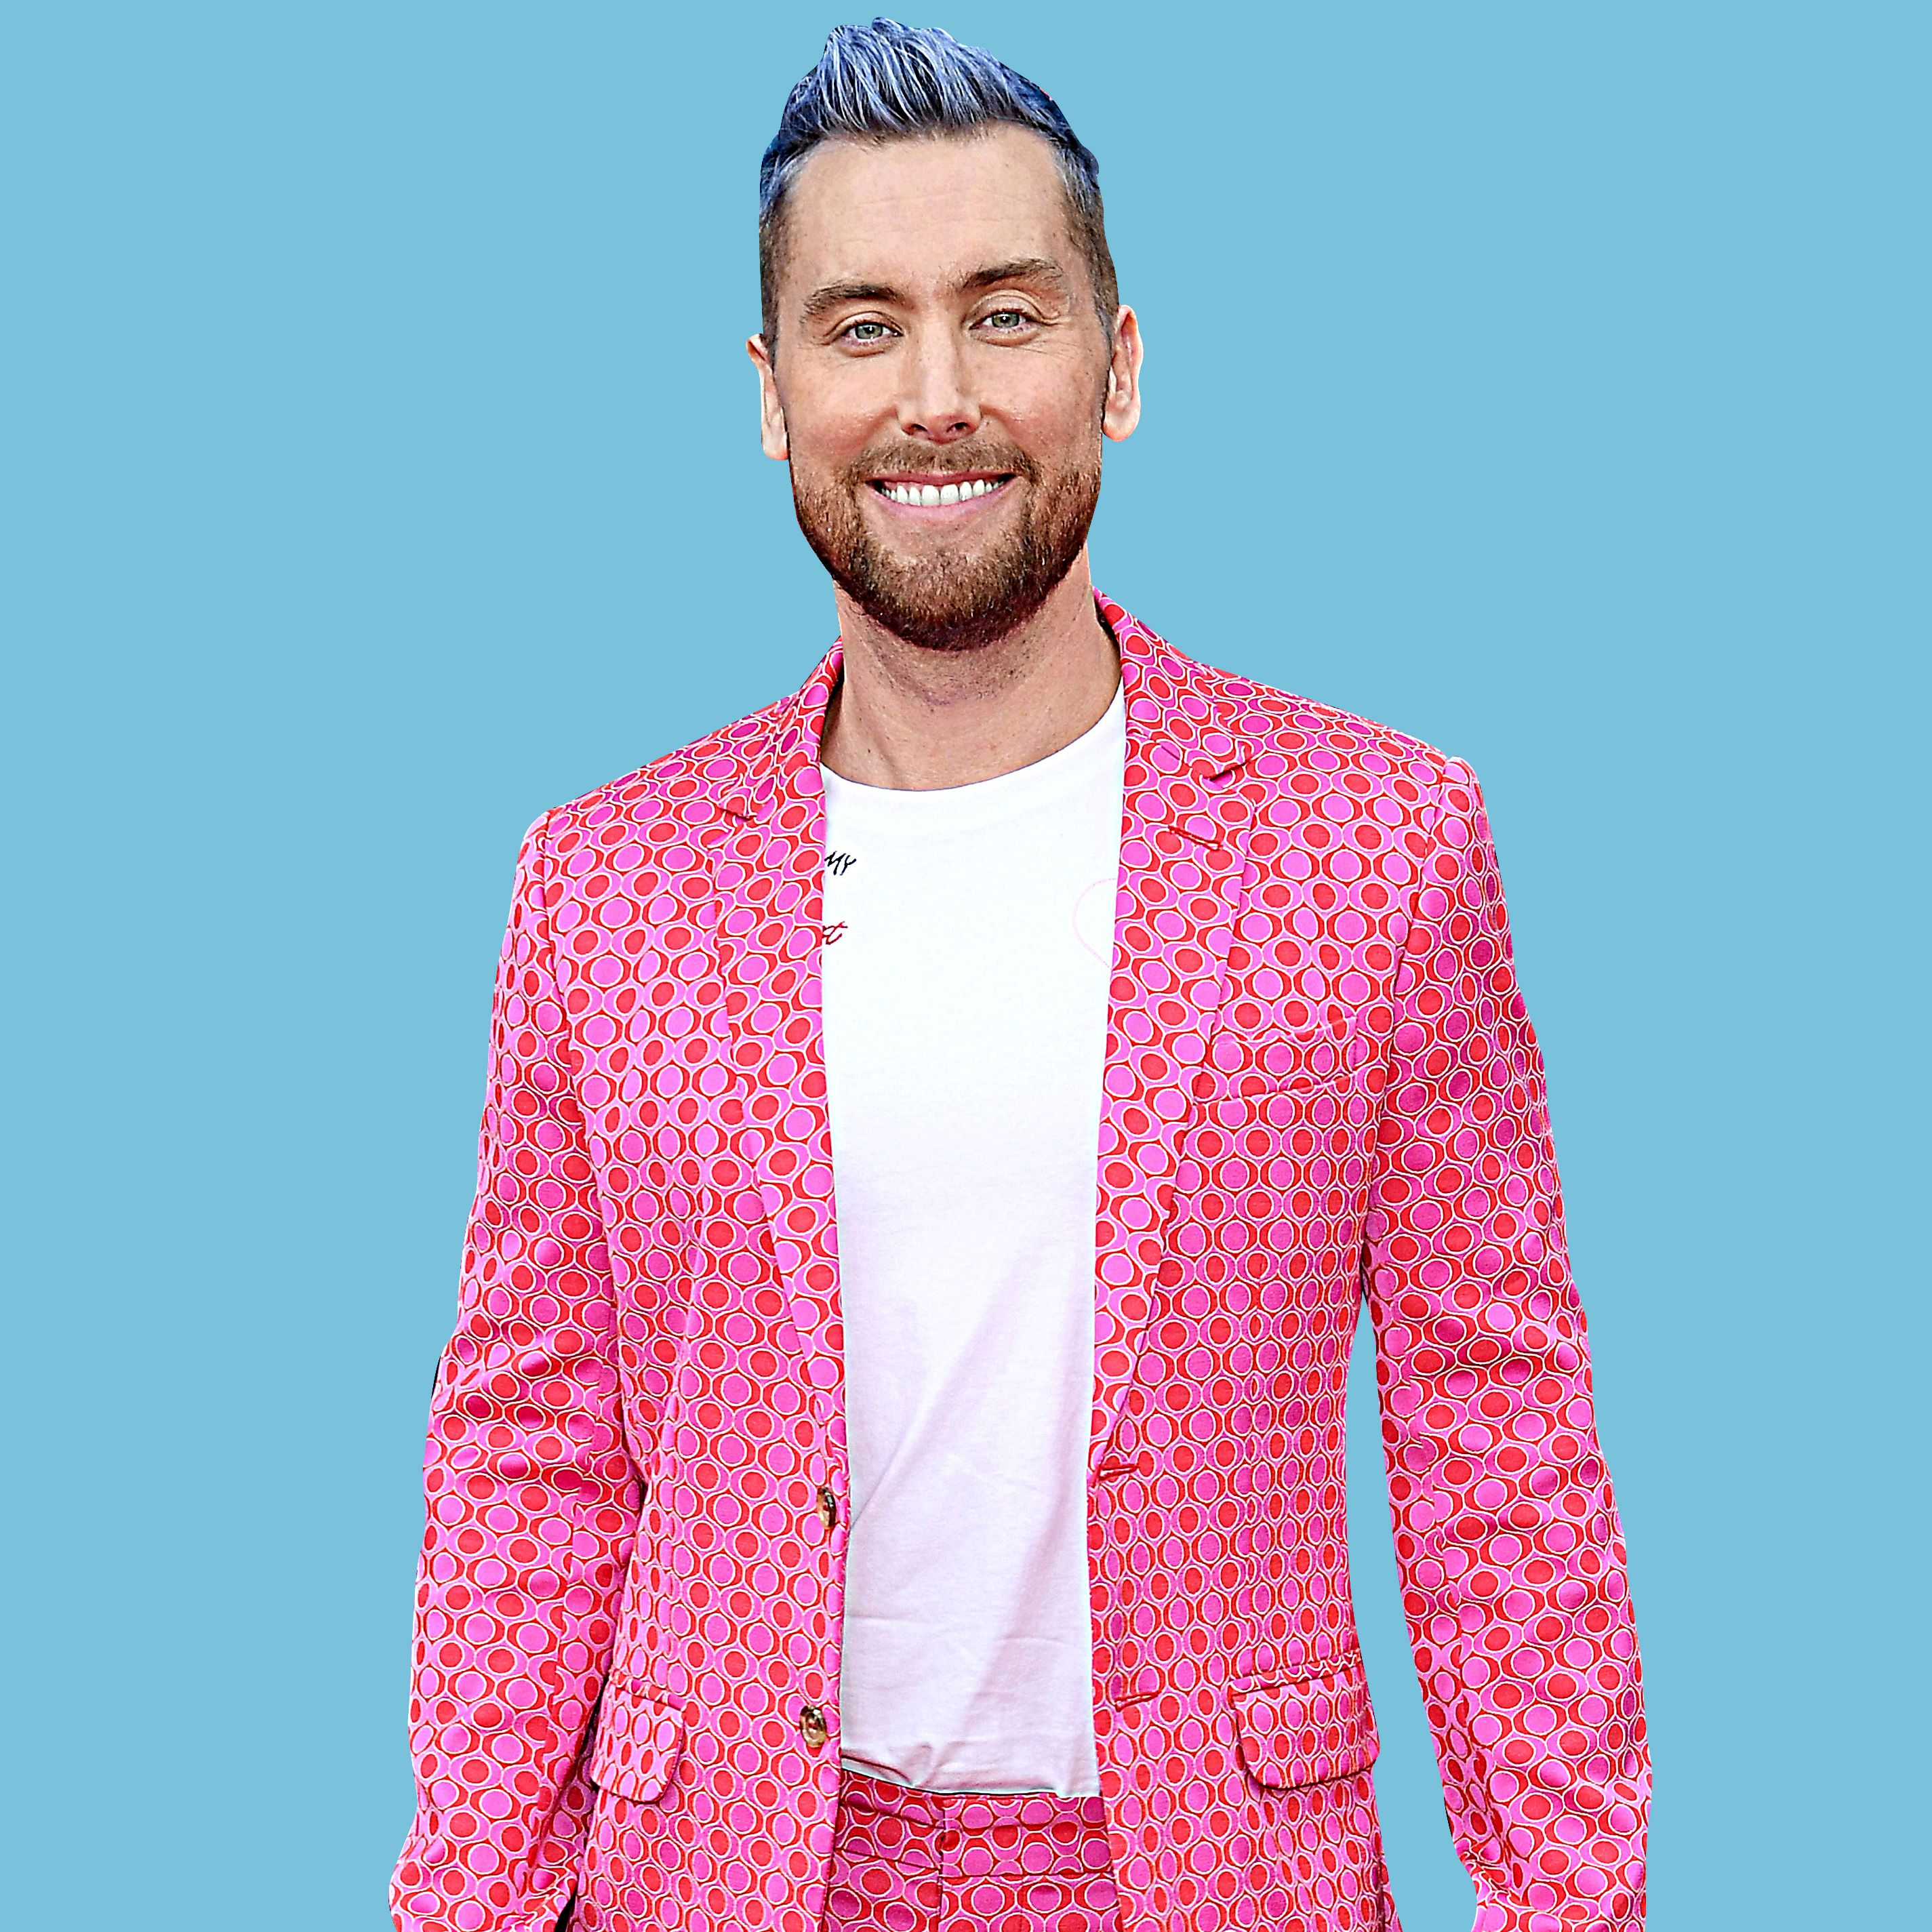 Lance Bass Is Hosting HGTV Holiday Special Outrageous to Kick Off the Season